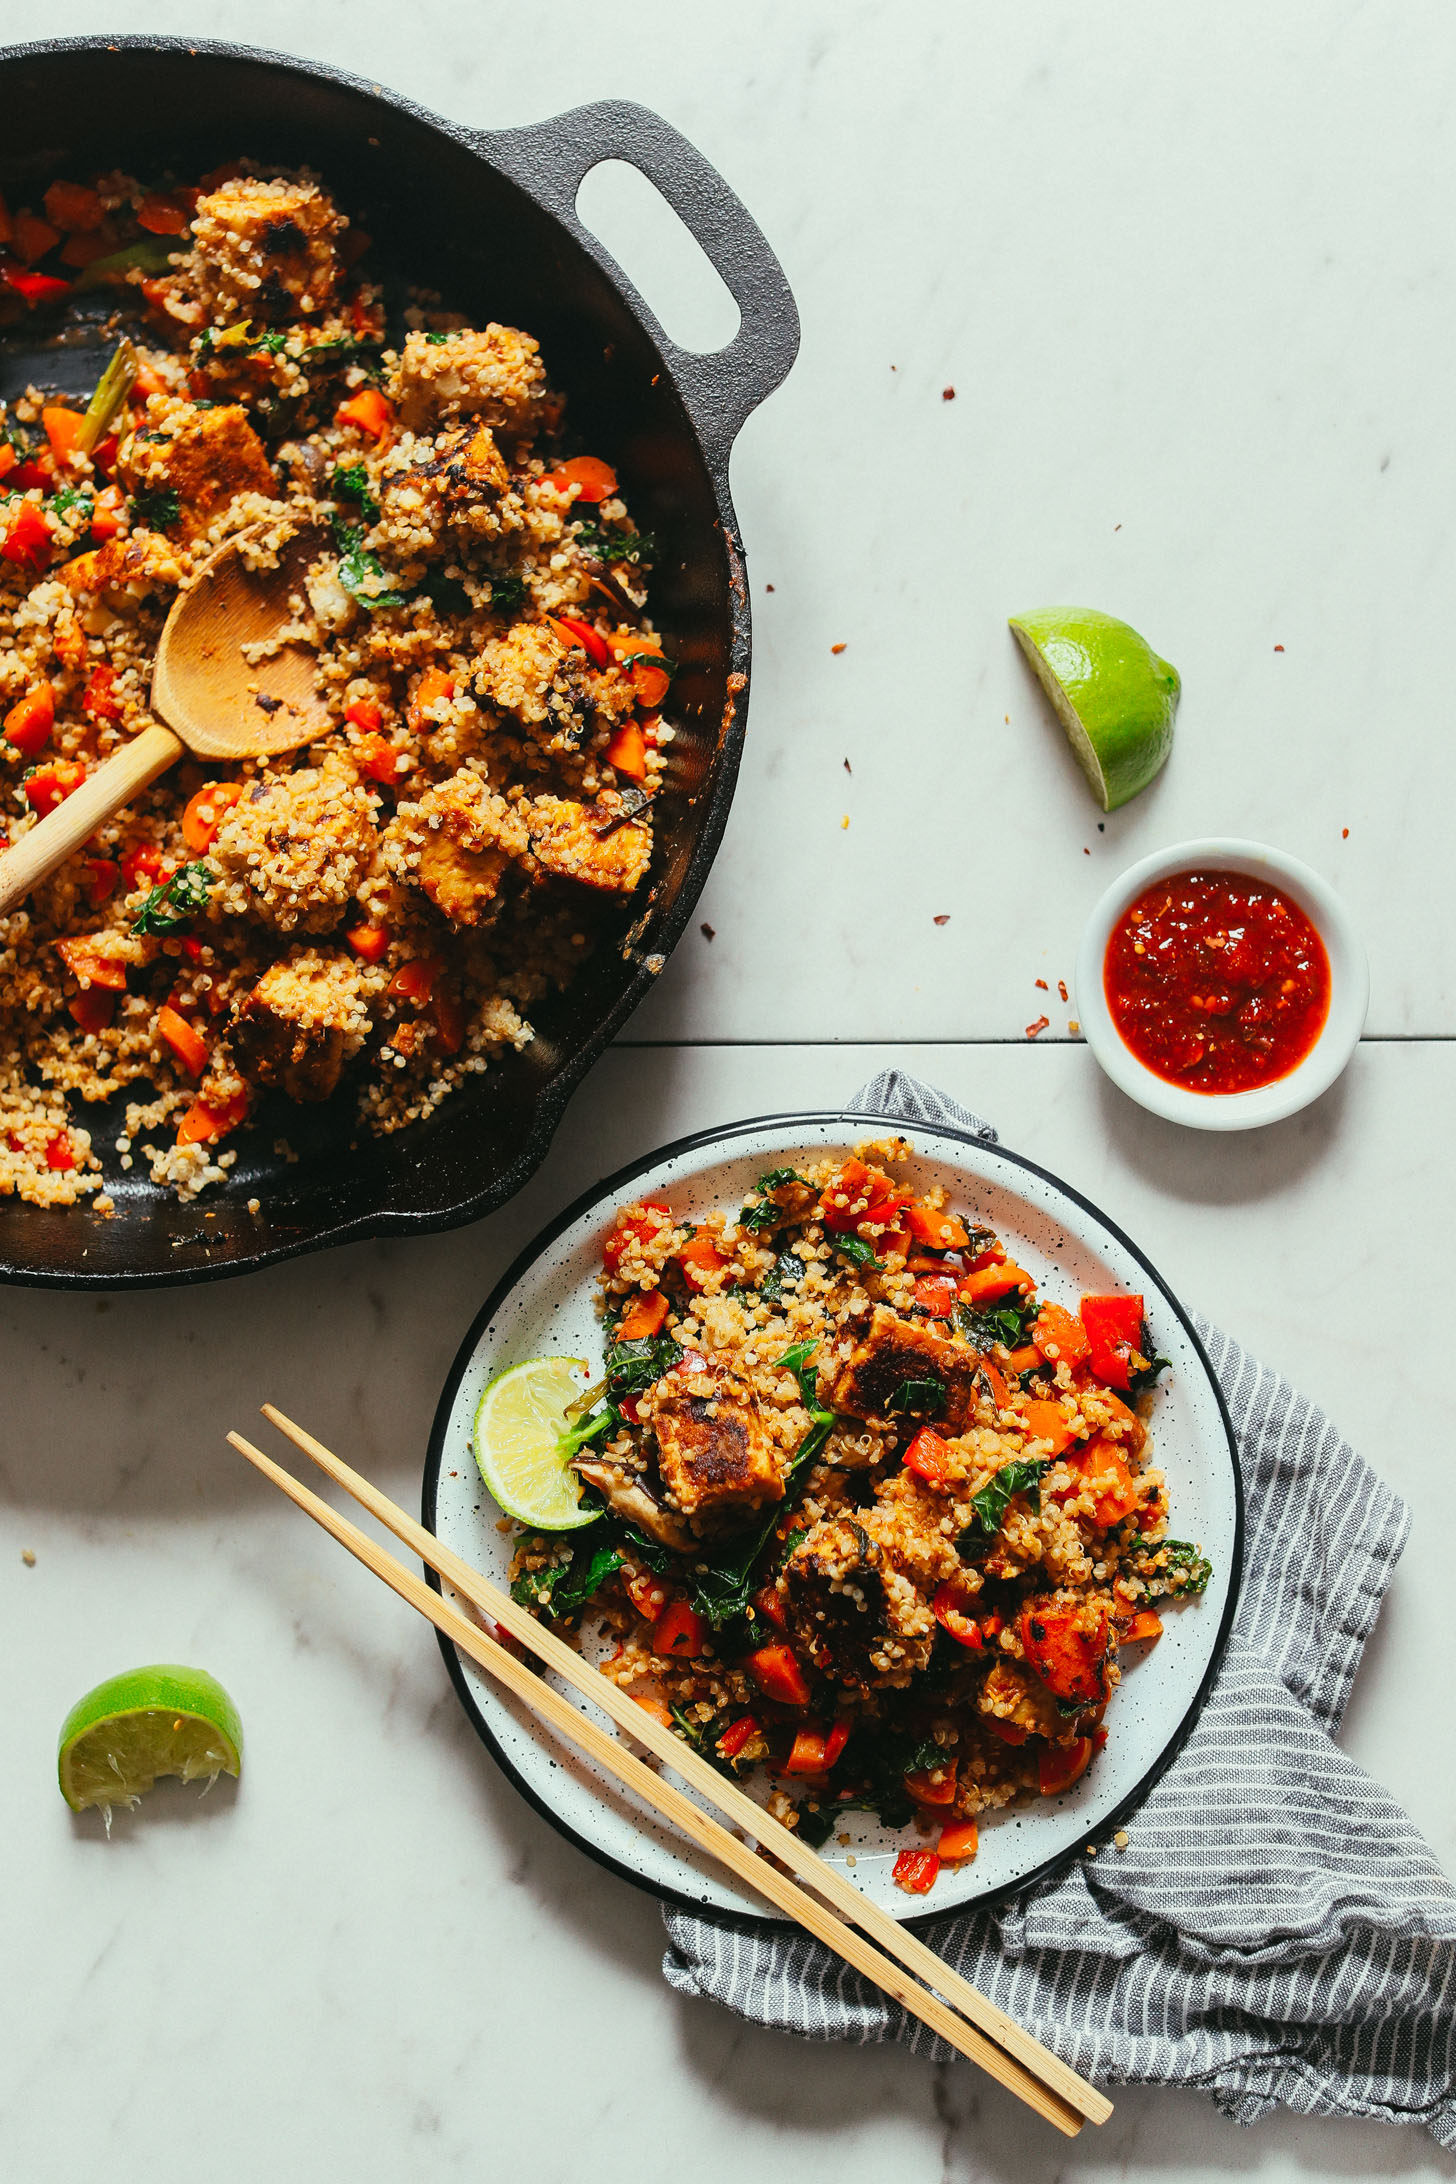 Overhead image of tempeh quinoa stir fry in a cast iron pot with a small serving plate and chopsticks on the side